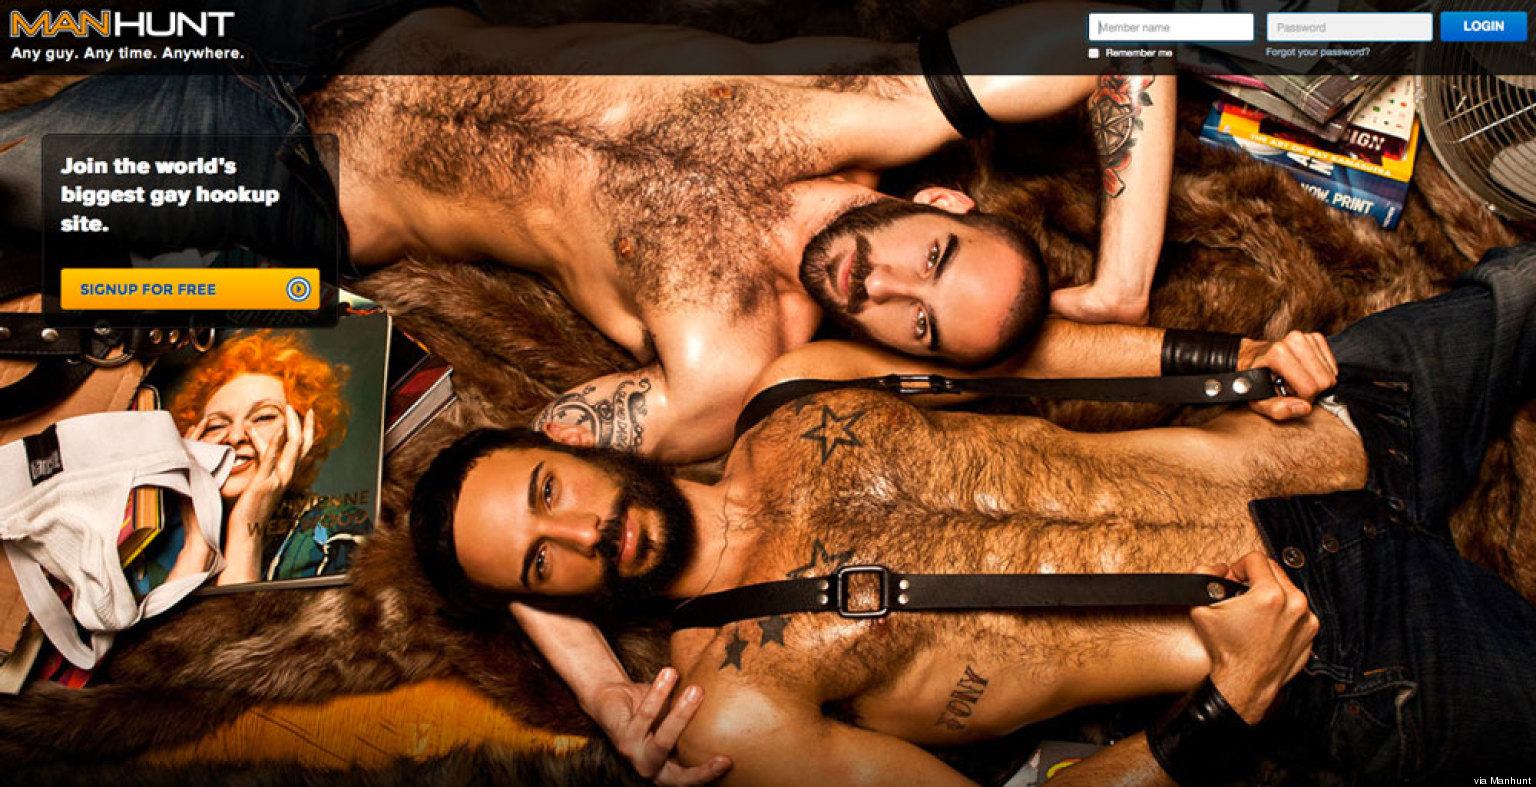 gay sex hook up manhunt jpg 422x640